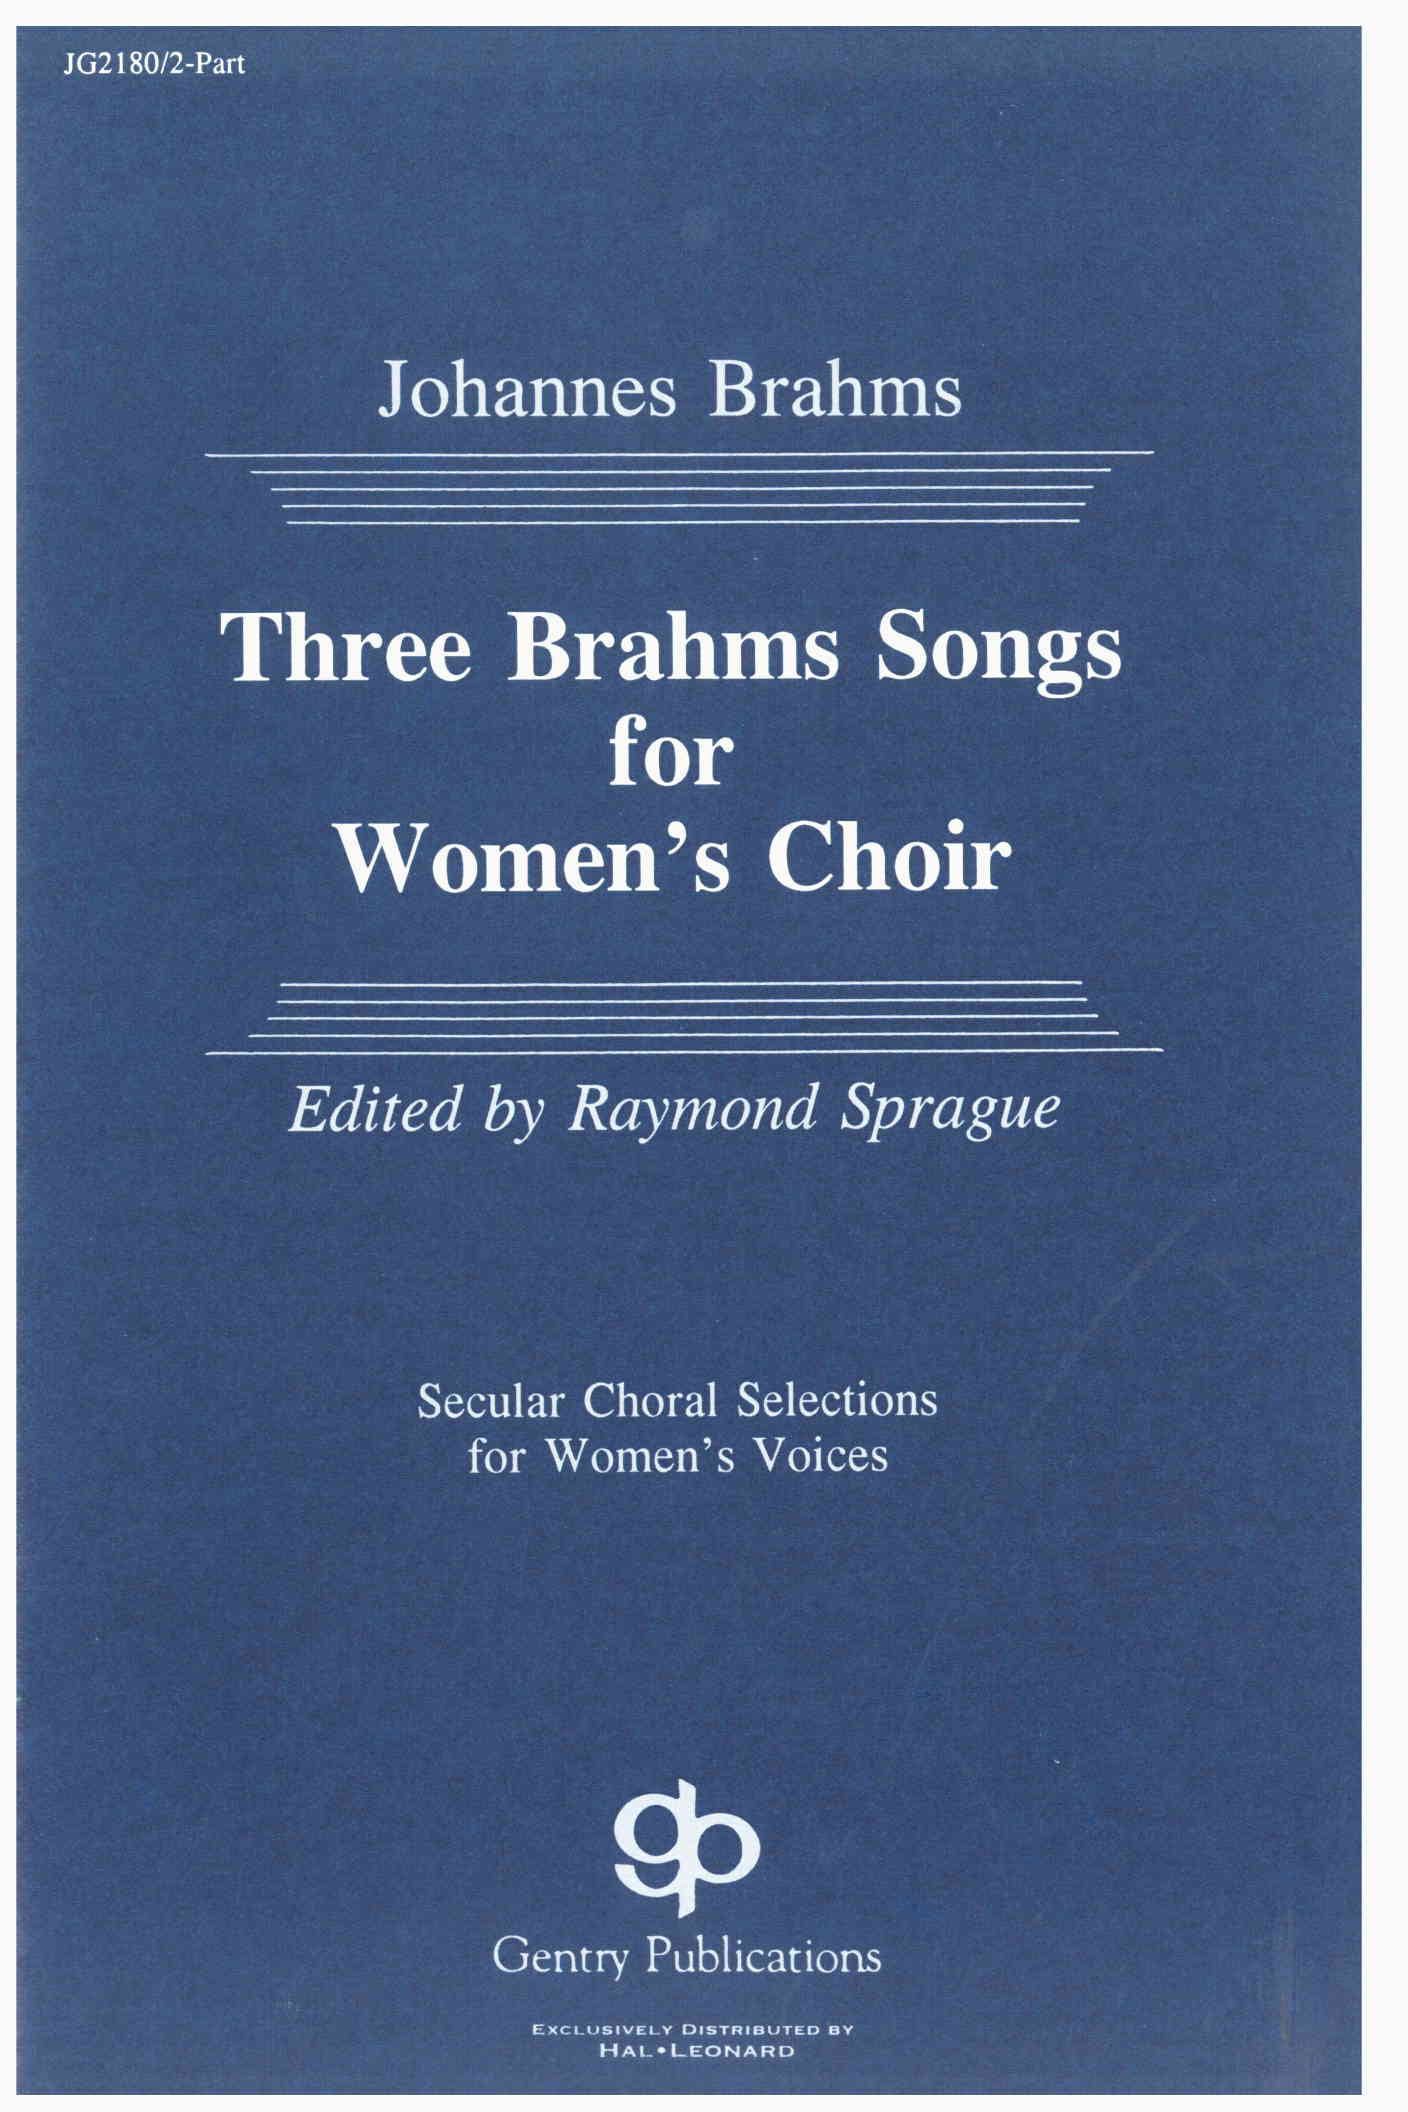 Three Brahms Songs For Women's Choir